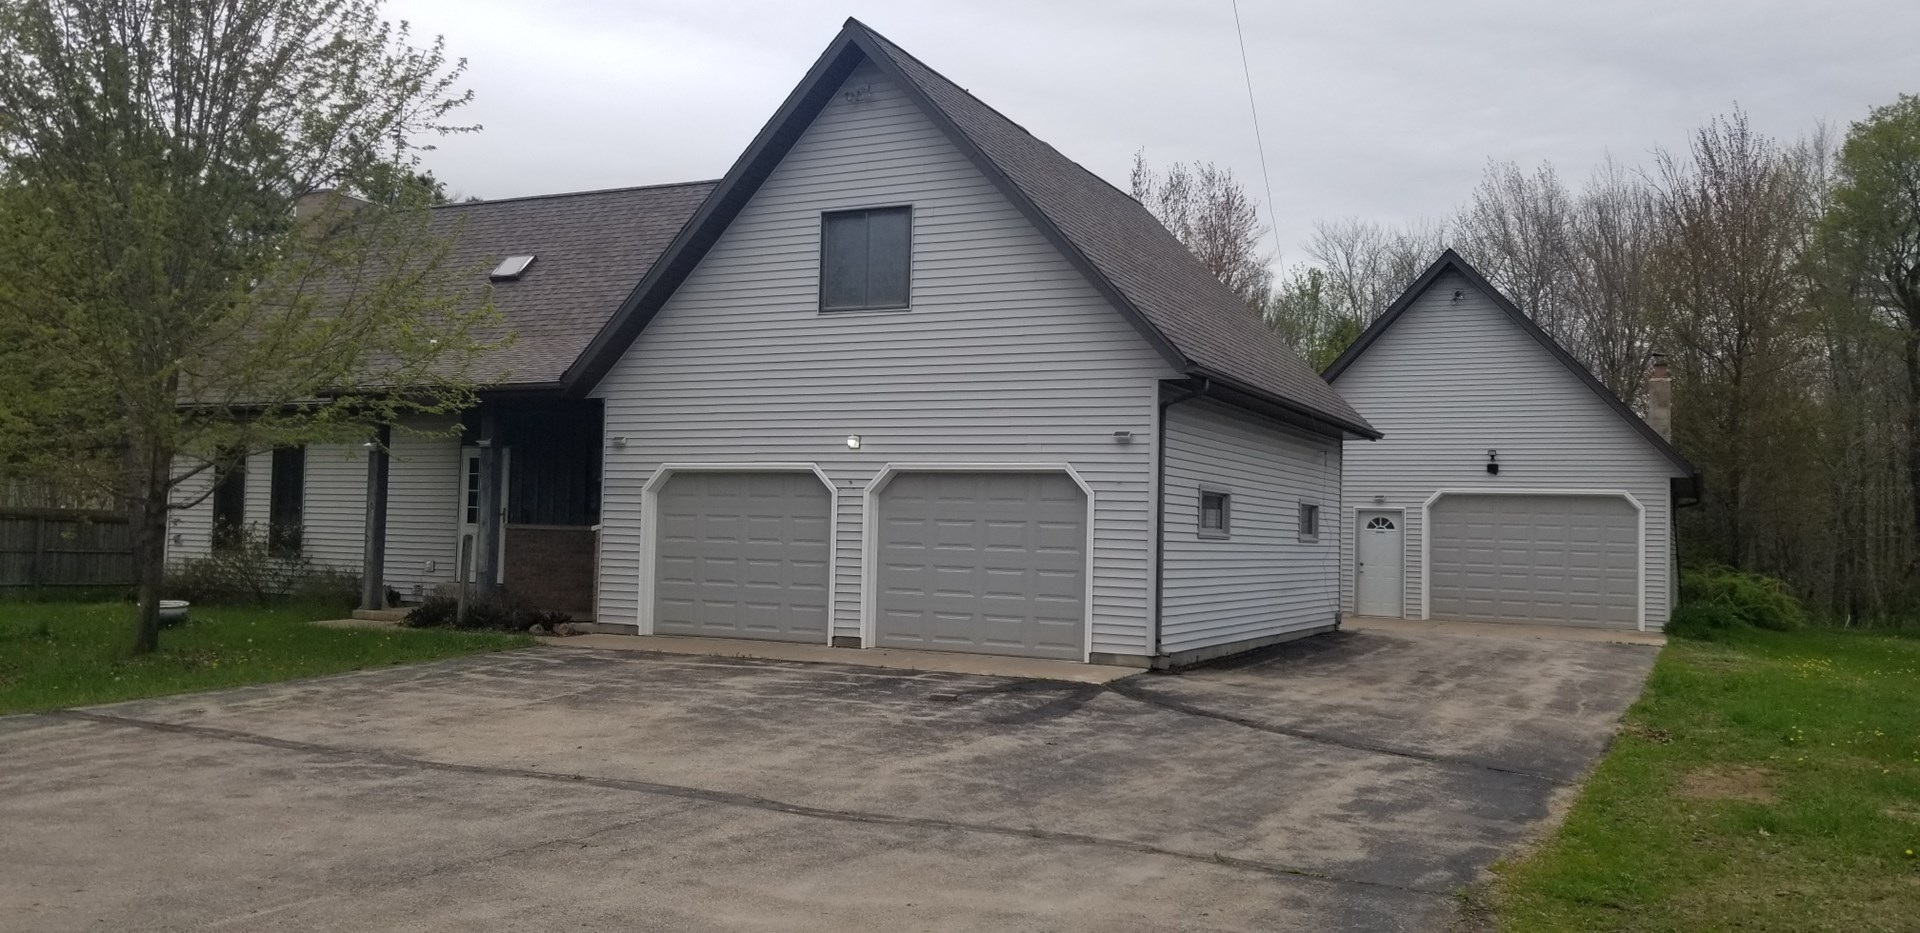 Home for Sale in Waupaca, WI